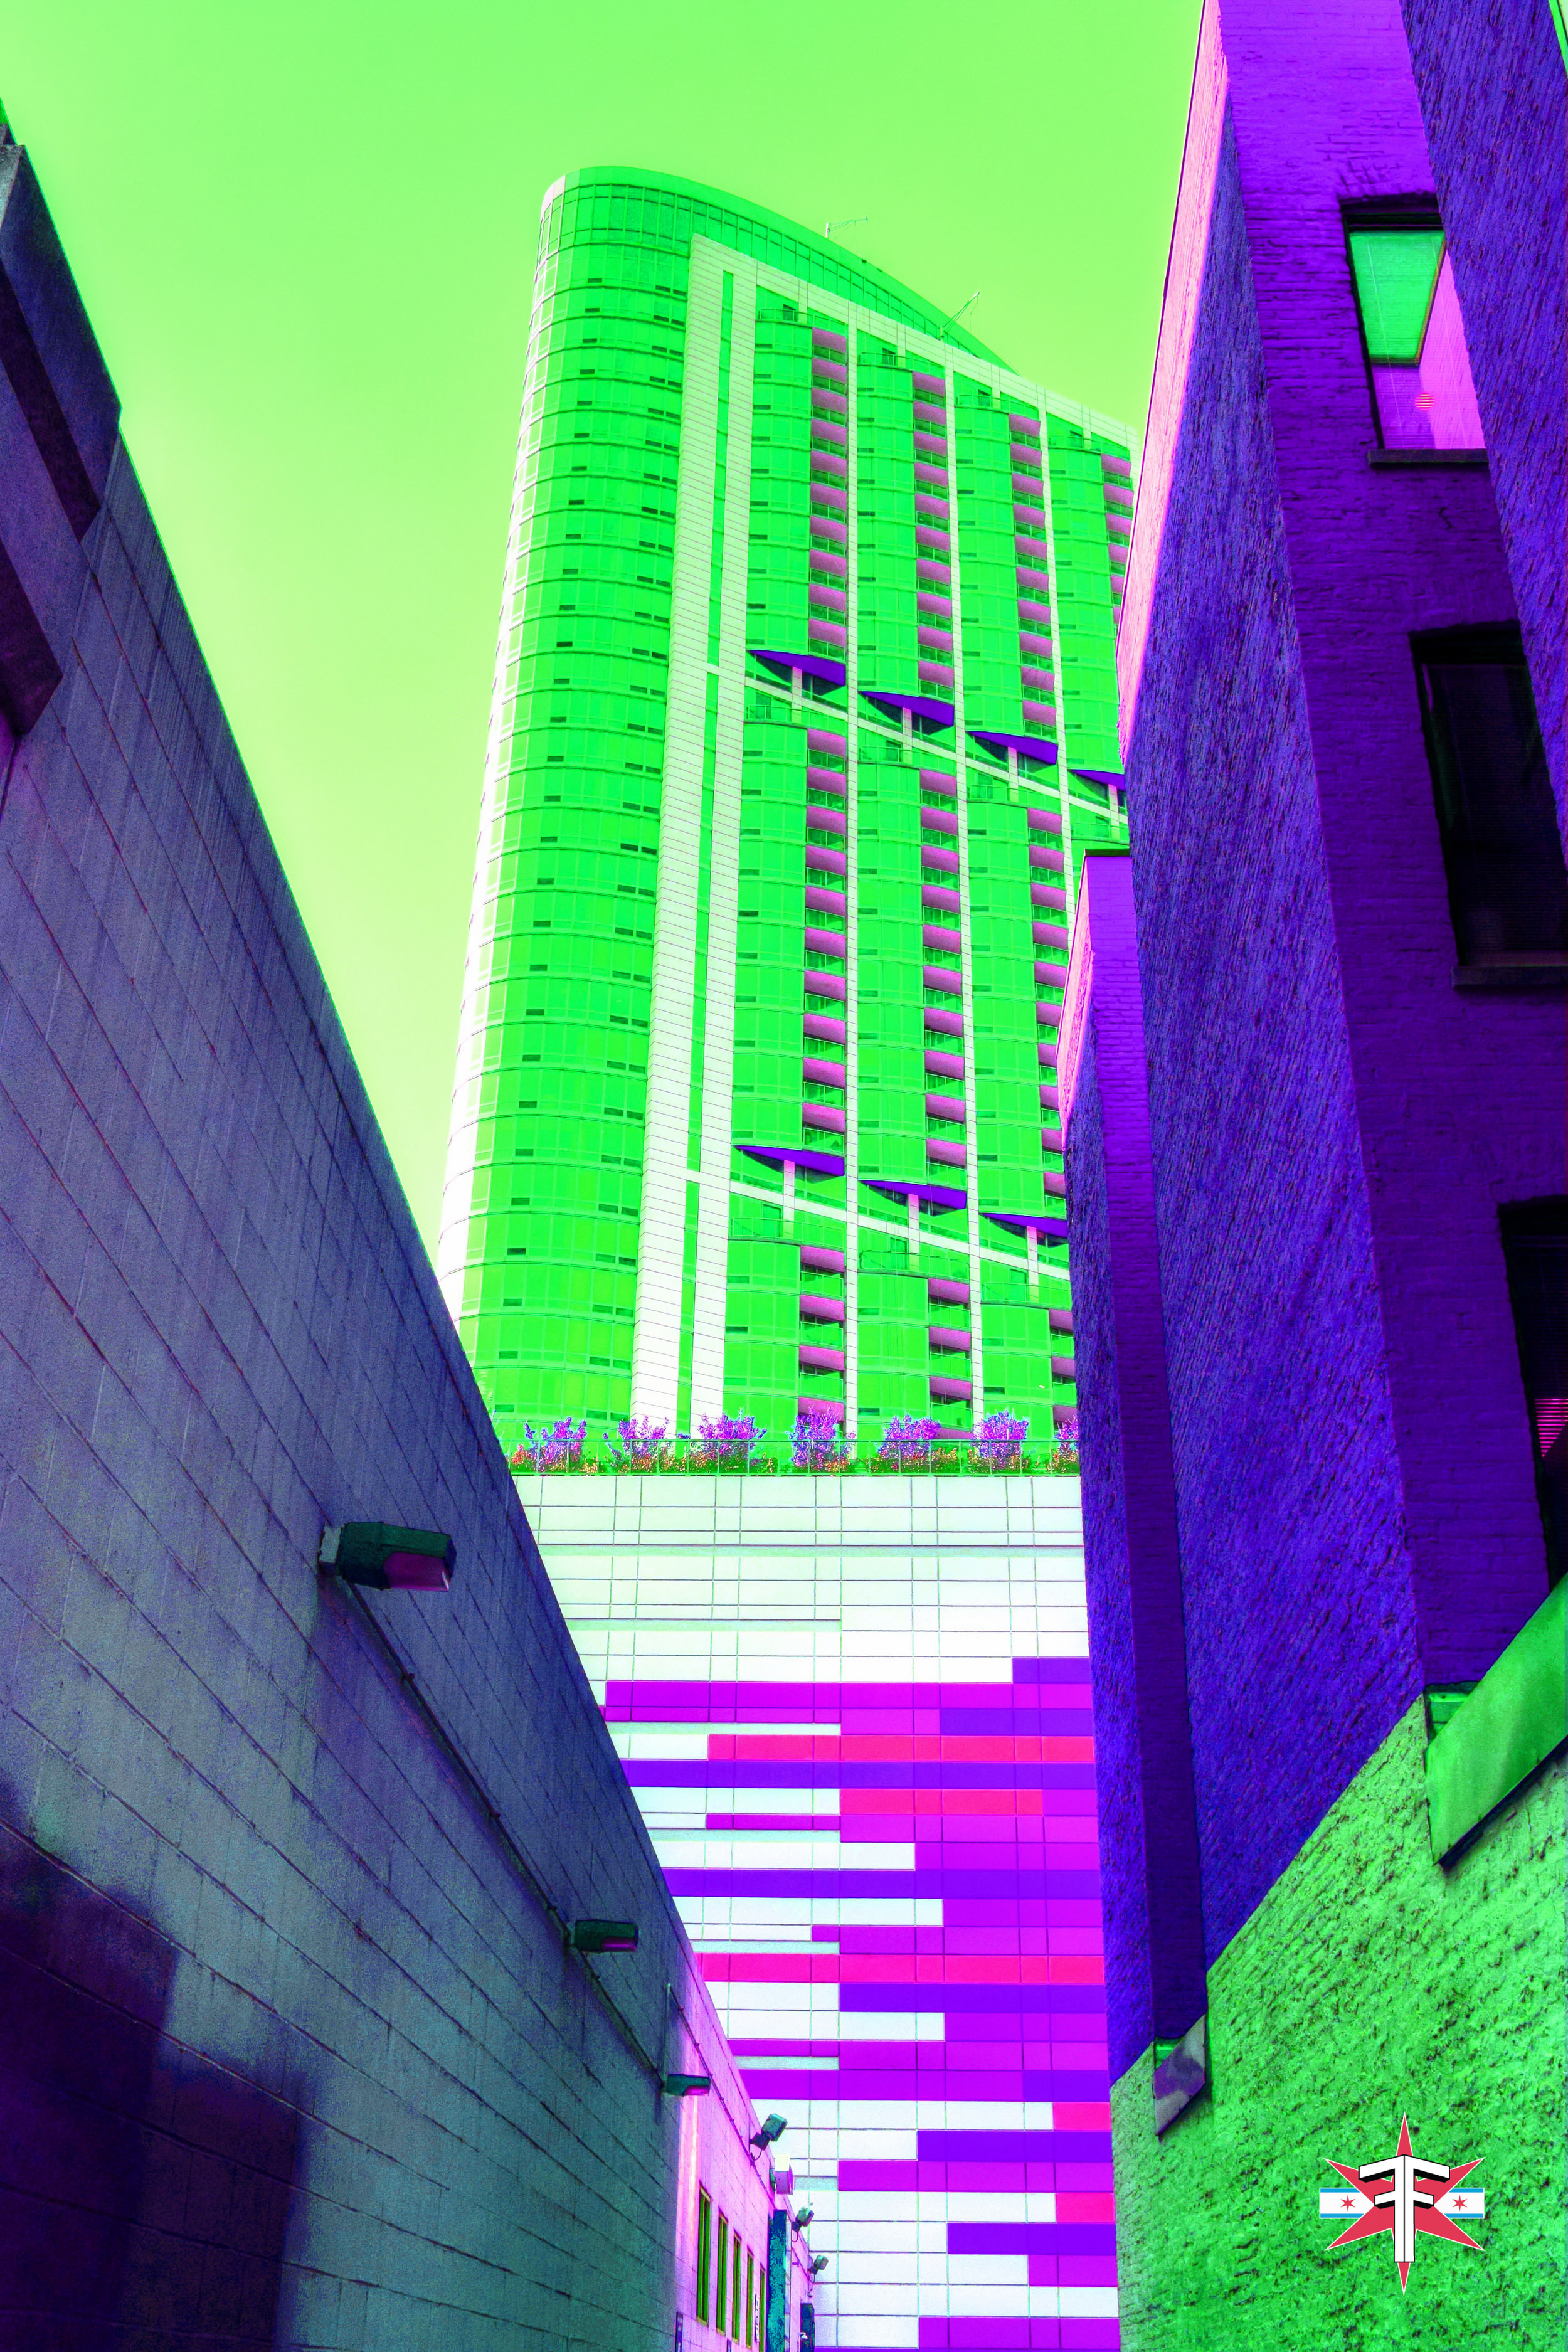 chicago art abstract eric formato photography color travel cityscape architecture saturated citycapes bright vibrant artistic-52-2.jpg